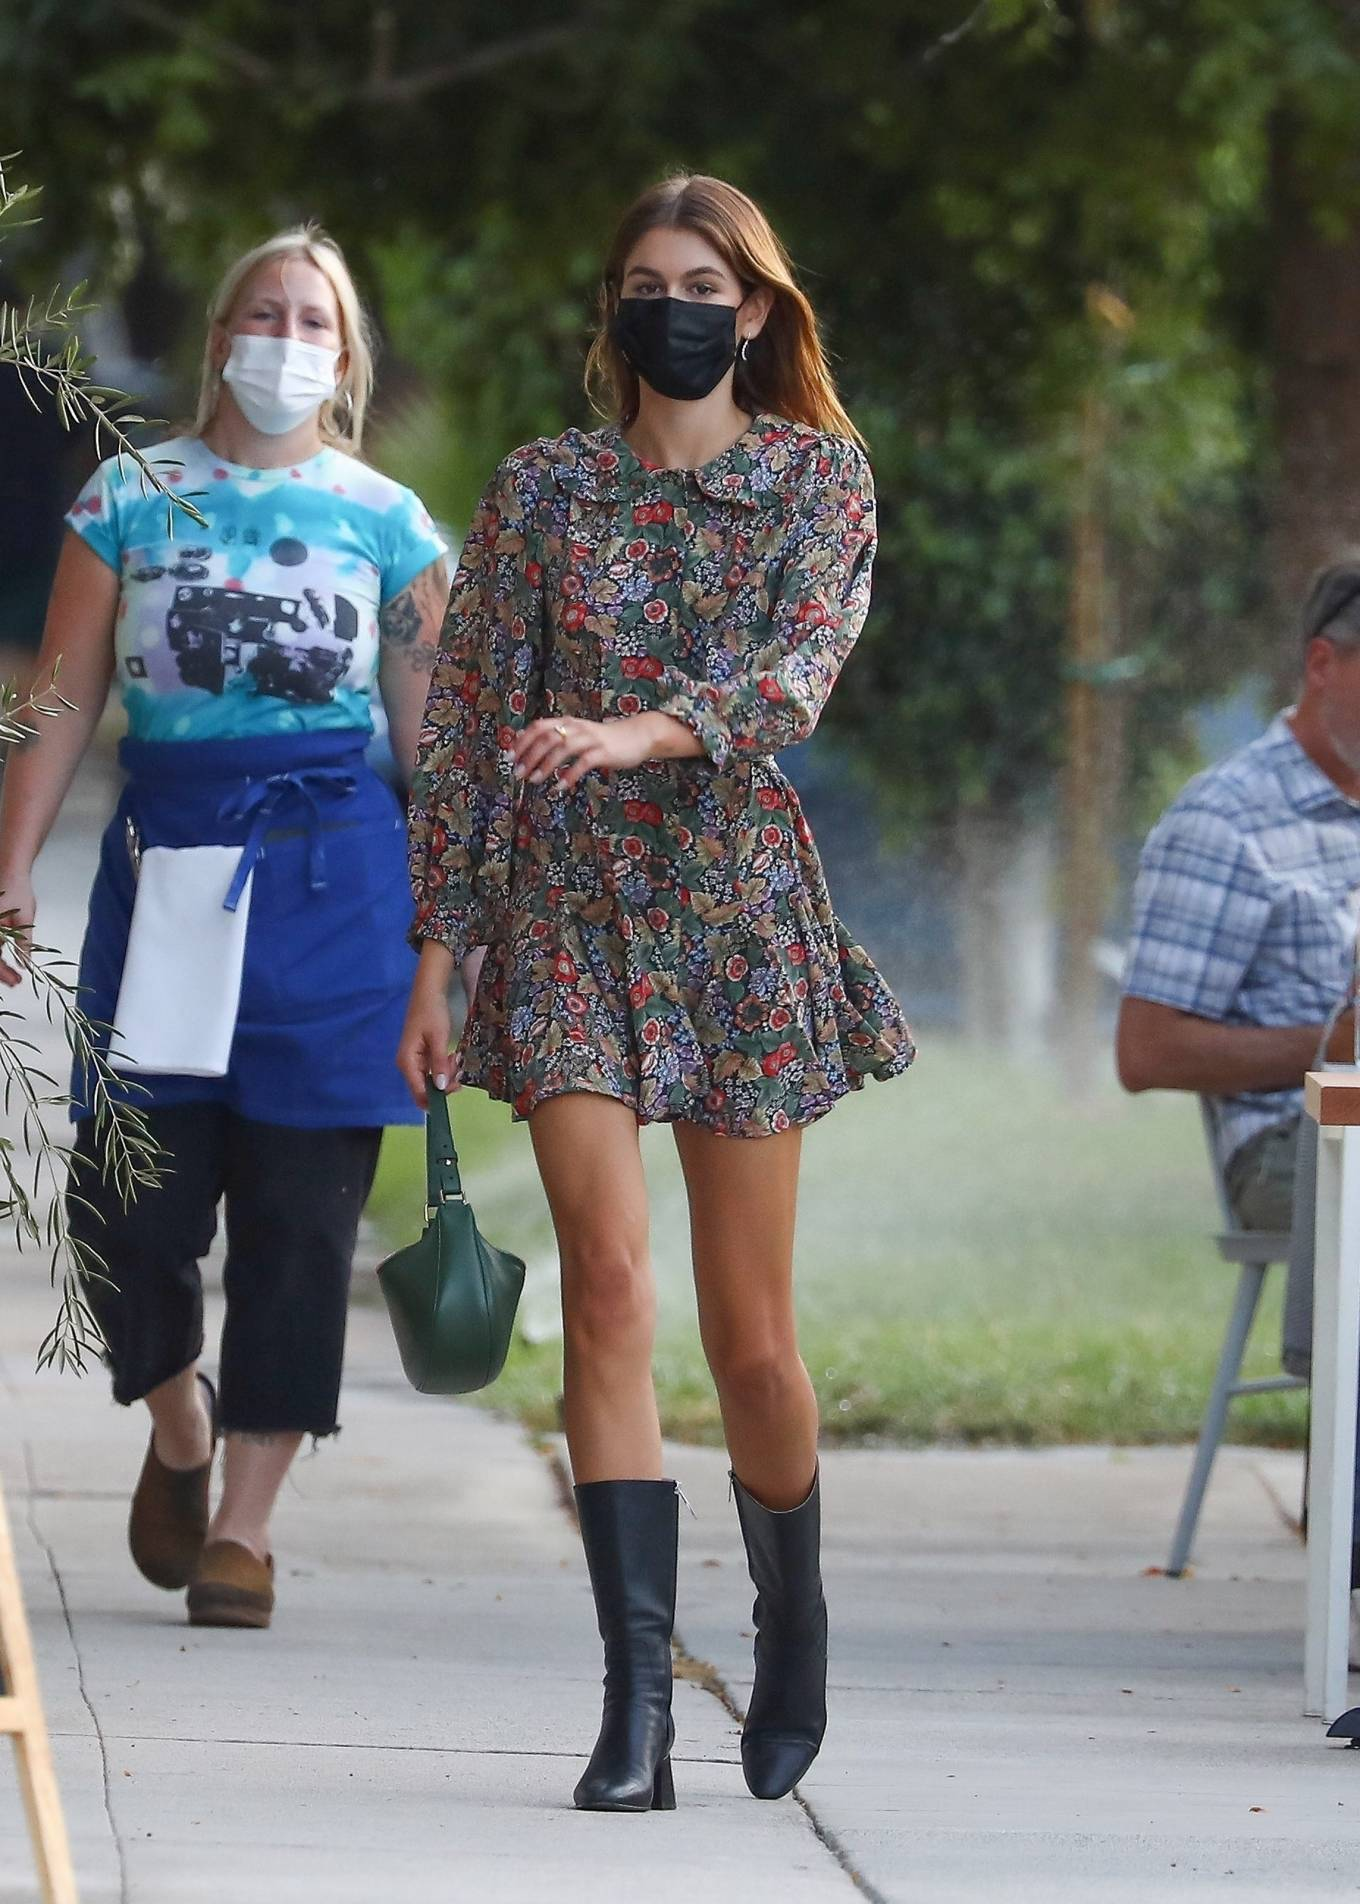 Kaia Gerber donning a flowing shirt dress with a viscose fabric, puffy sleeves, shirt collar and floral print